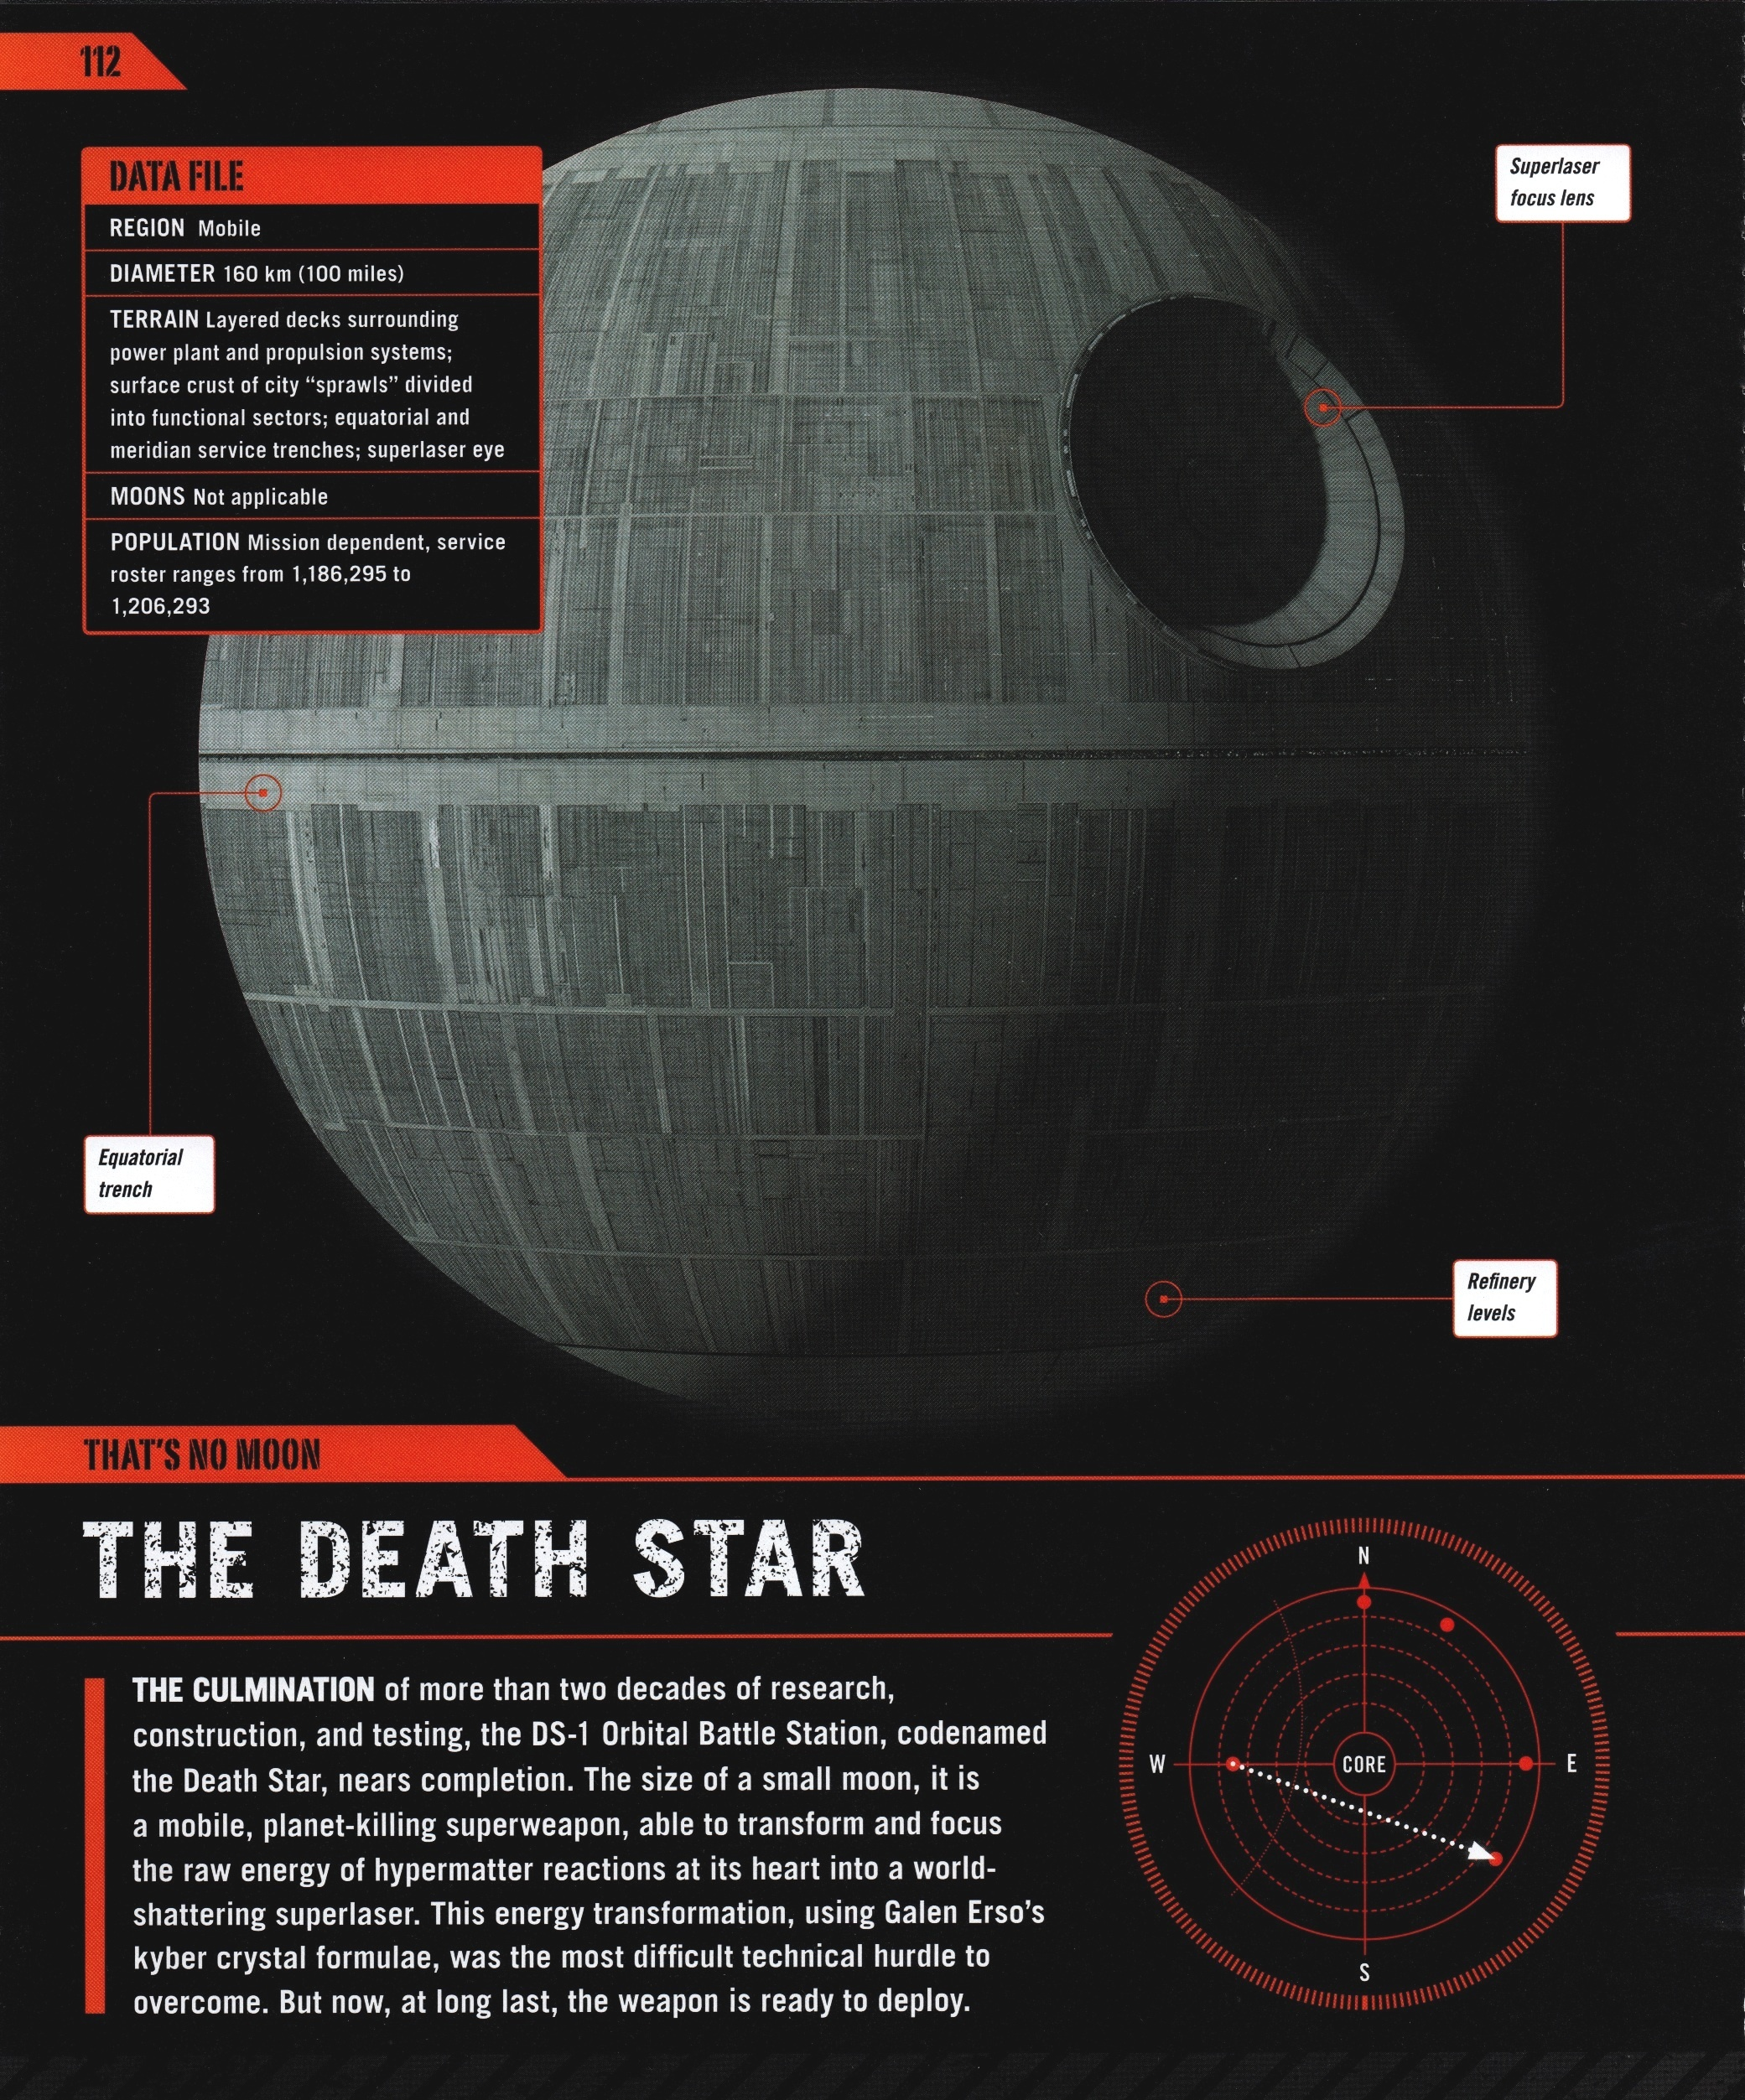 Rogue One Ultimate Visual Guide (b0bafett_Empire) p112